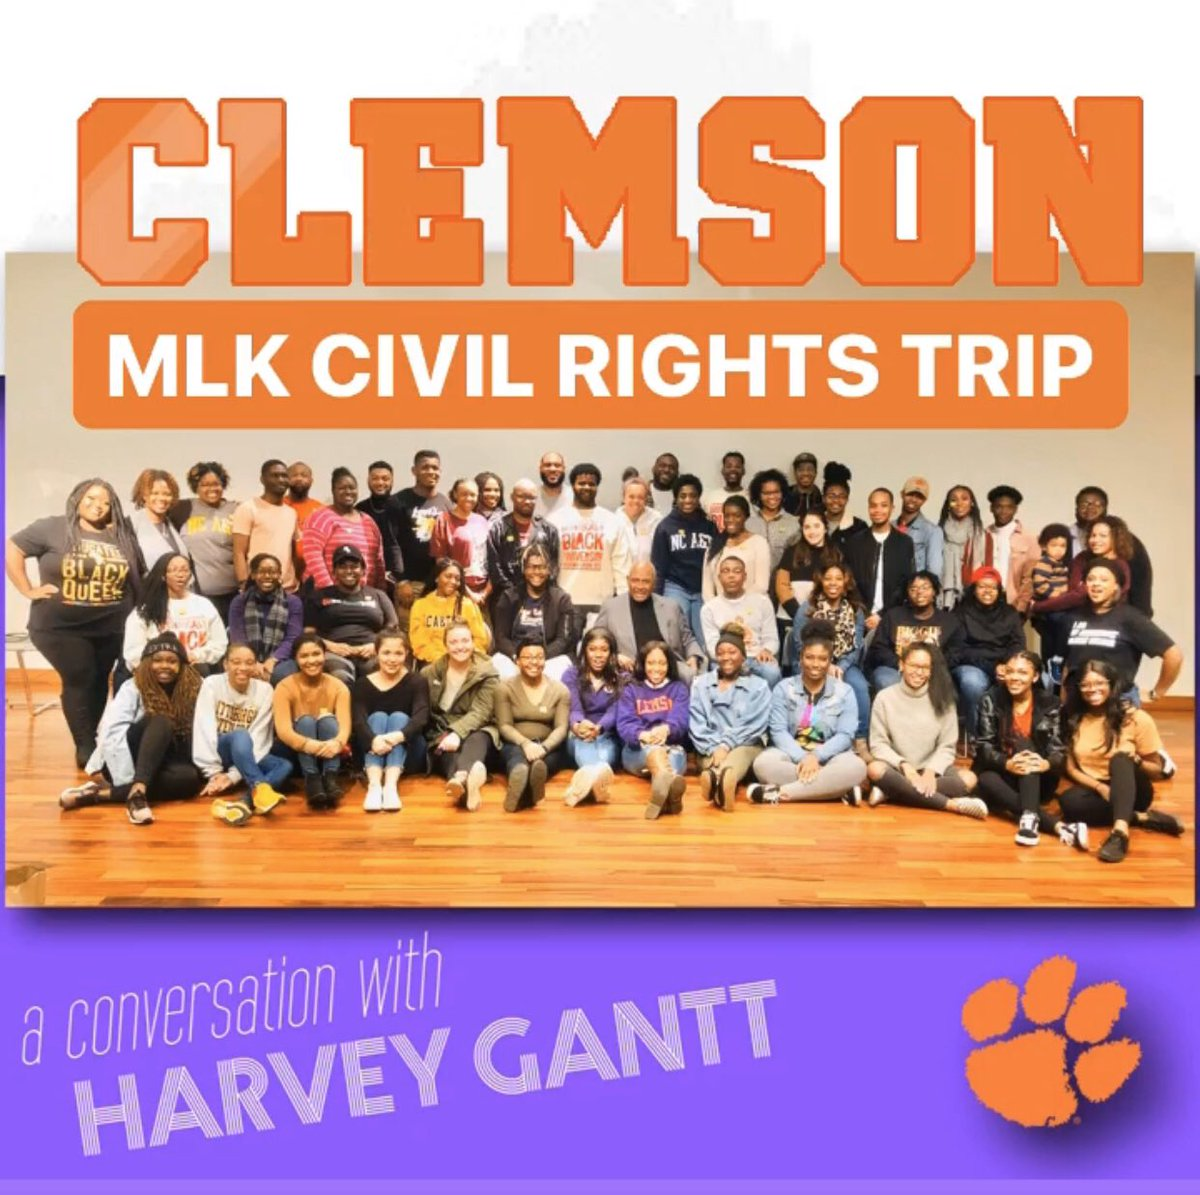 DAY 3 : GANTT CENTER FOR AFRICAN AMERICAN ARTS & CULTURE : with a SURPRISE appearance by Mr Harvey B Gantt, FAIA  : Clemson Univeristy MLK Civil Rights Trip 2020 - #ClemsonMLK #ClemsonMoments #ClemsonFamily  <br>http://pic.twitter.com/3a0Oxw0CHx